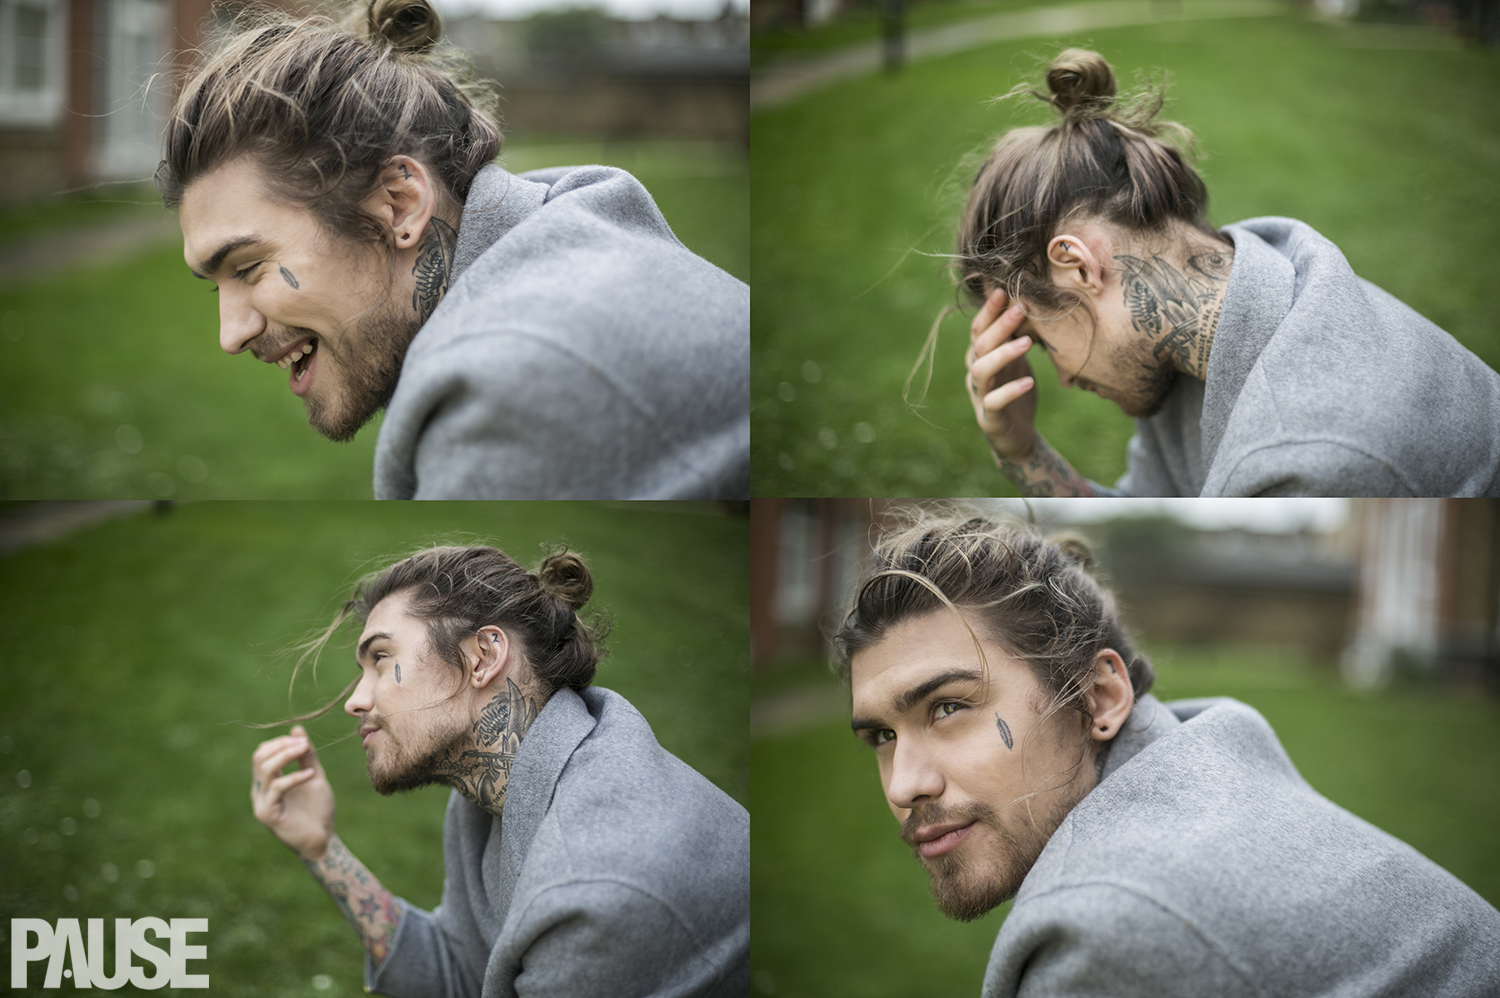 PAUSE Editorial: Marco Pierre White Jr